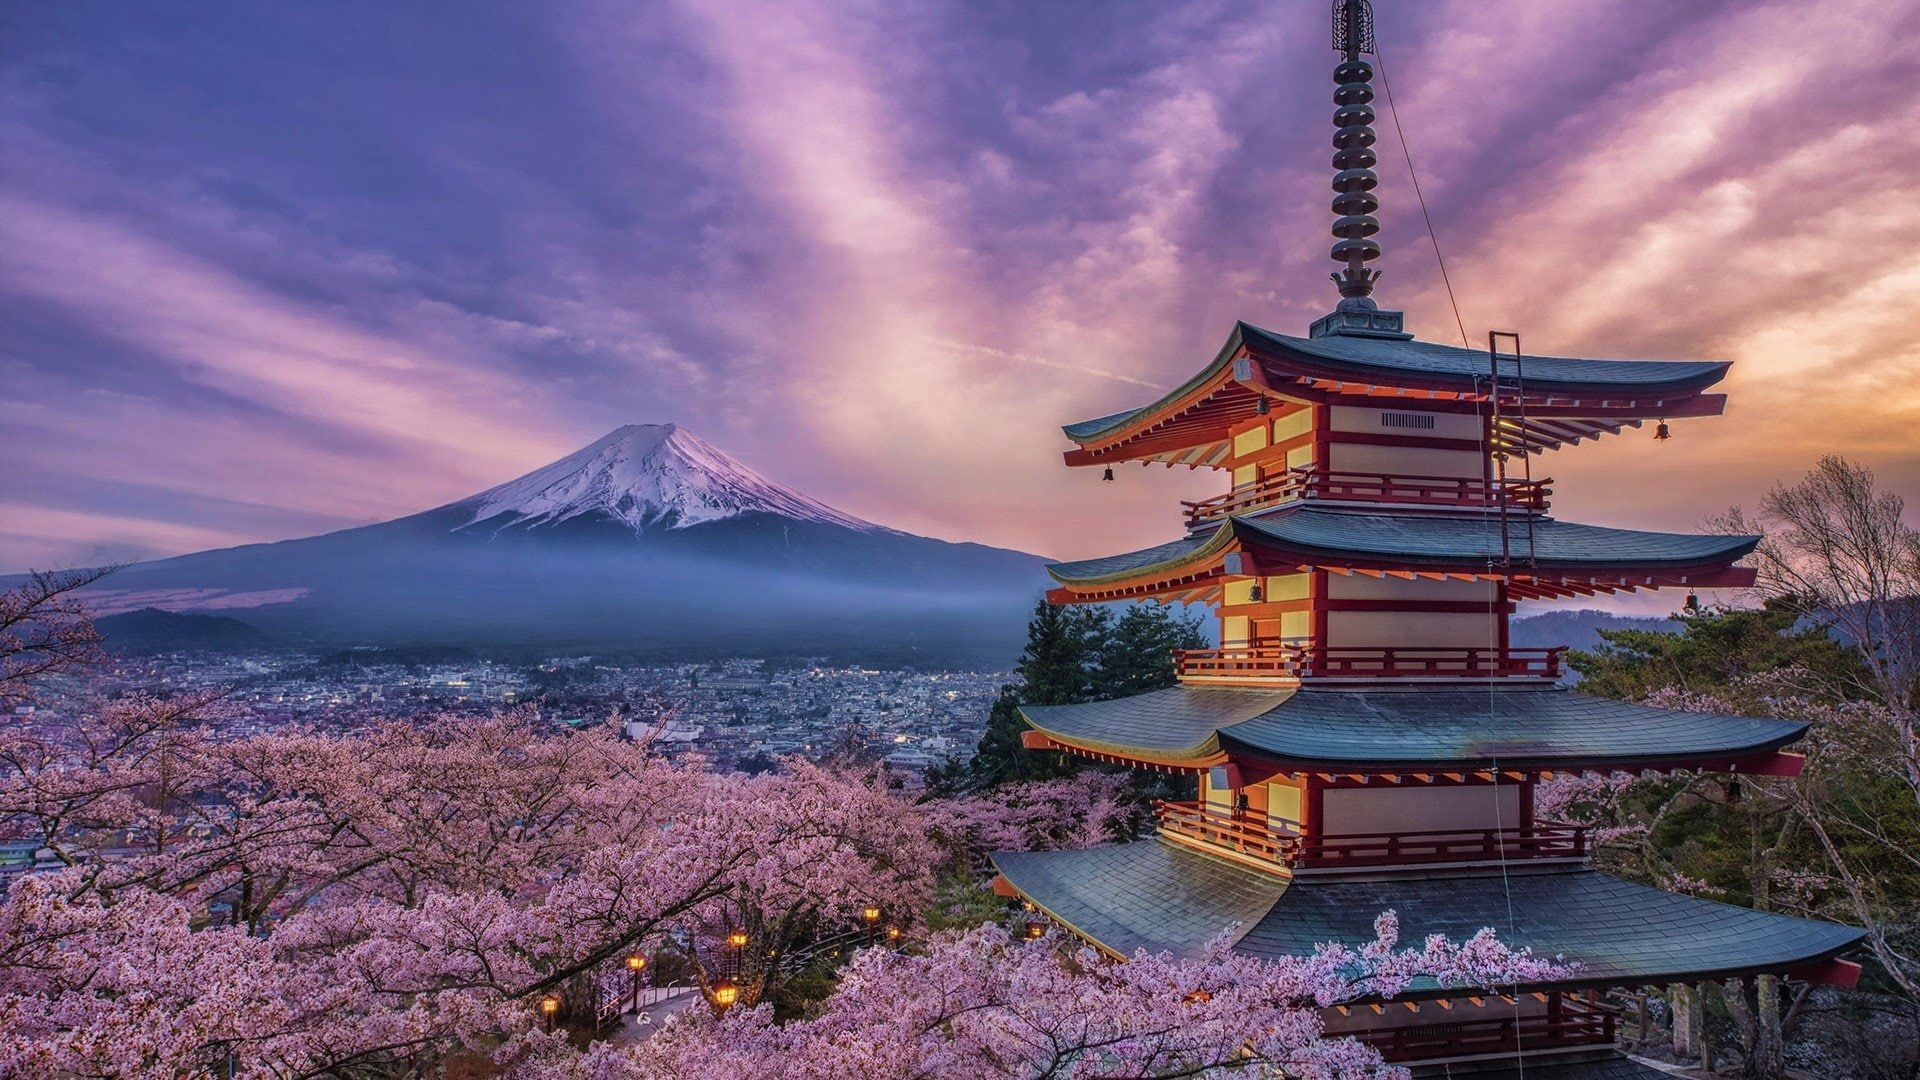 59 Japan 4k Wallpapers On Wallpaperplay In 2020 Scenery Wallpaper Japanese Landscape Hd Anime Wallpapers